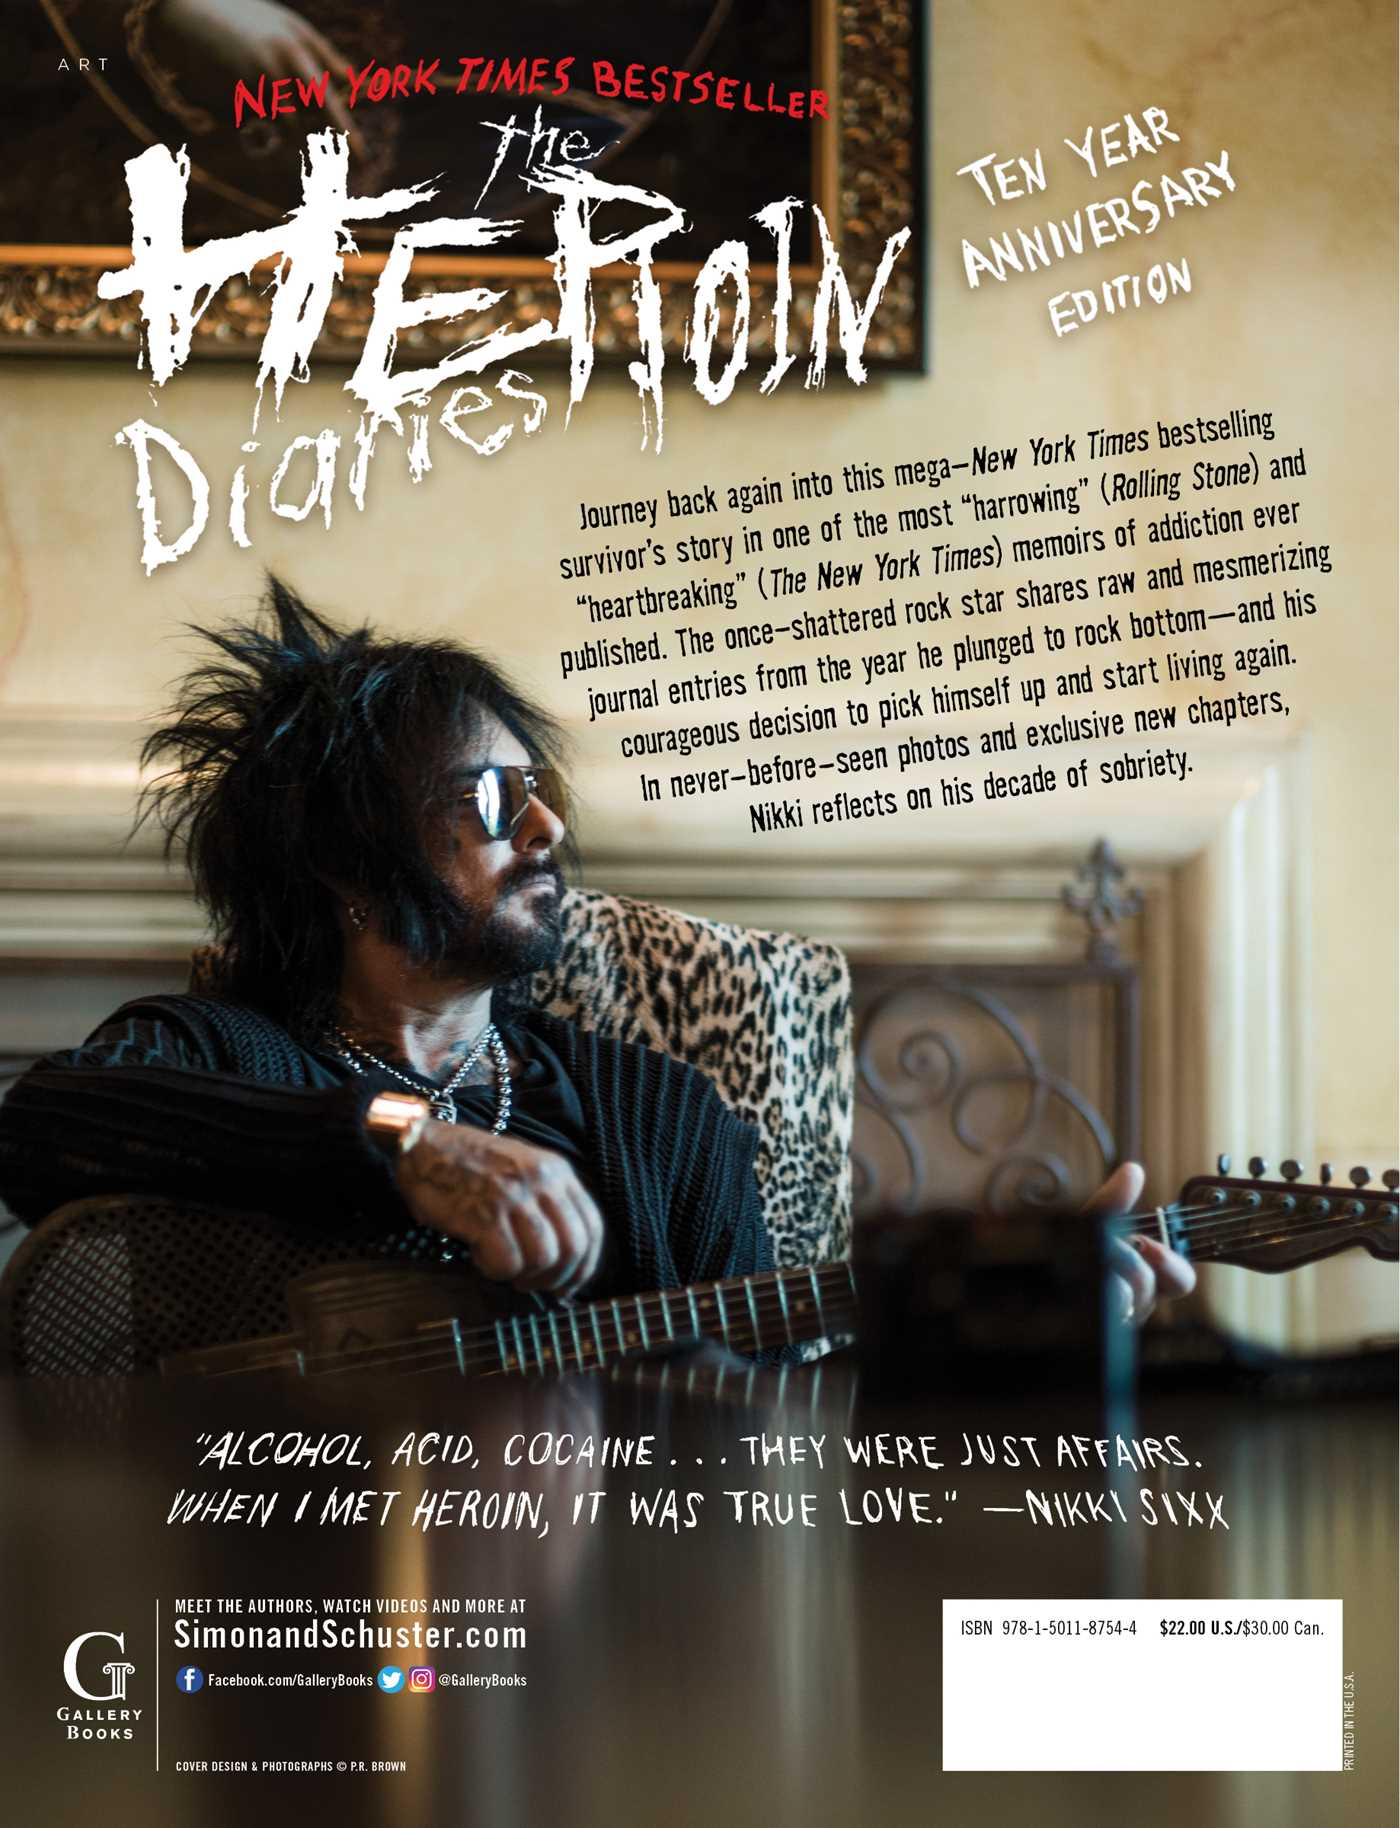 The heroin diaries ten year anniversary edition 9781501187544 hr back